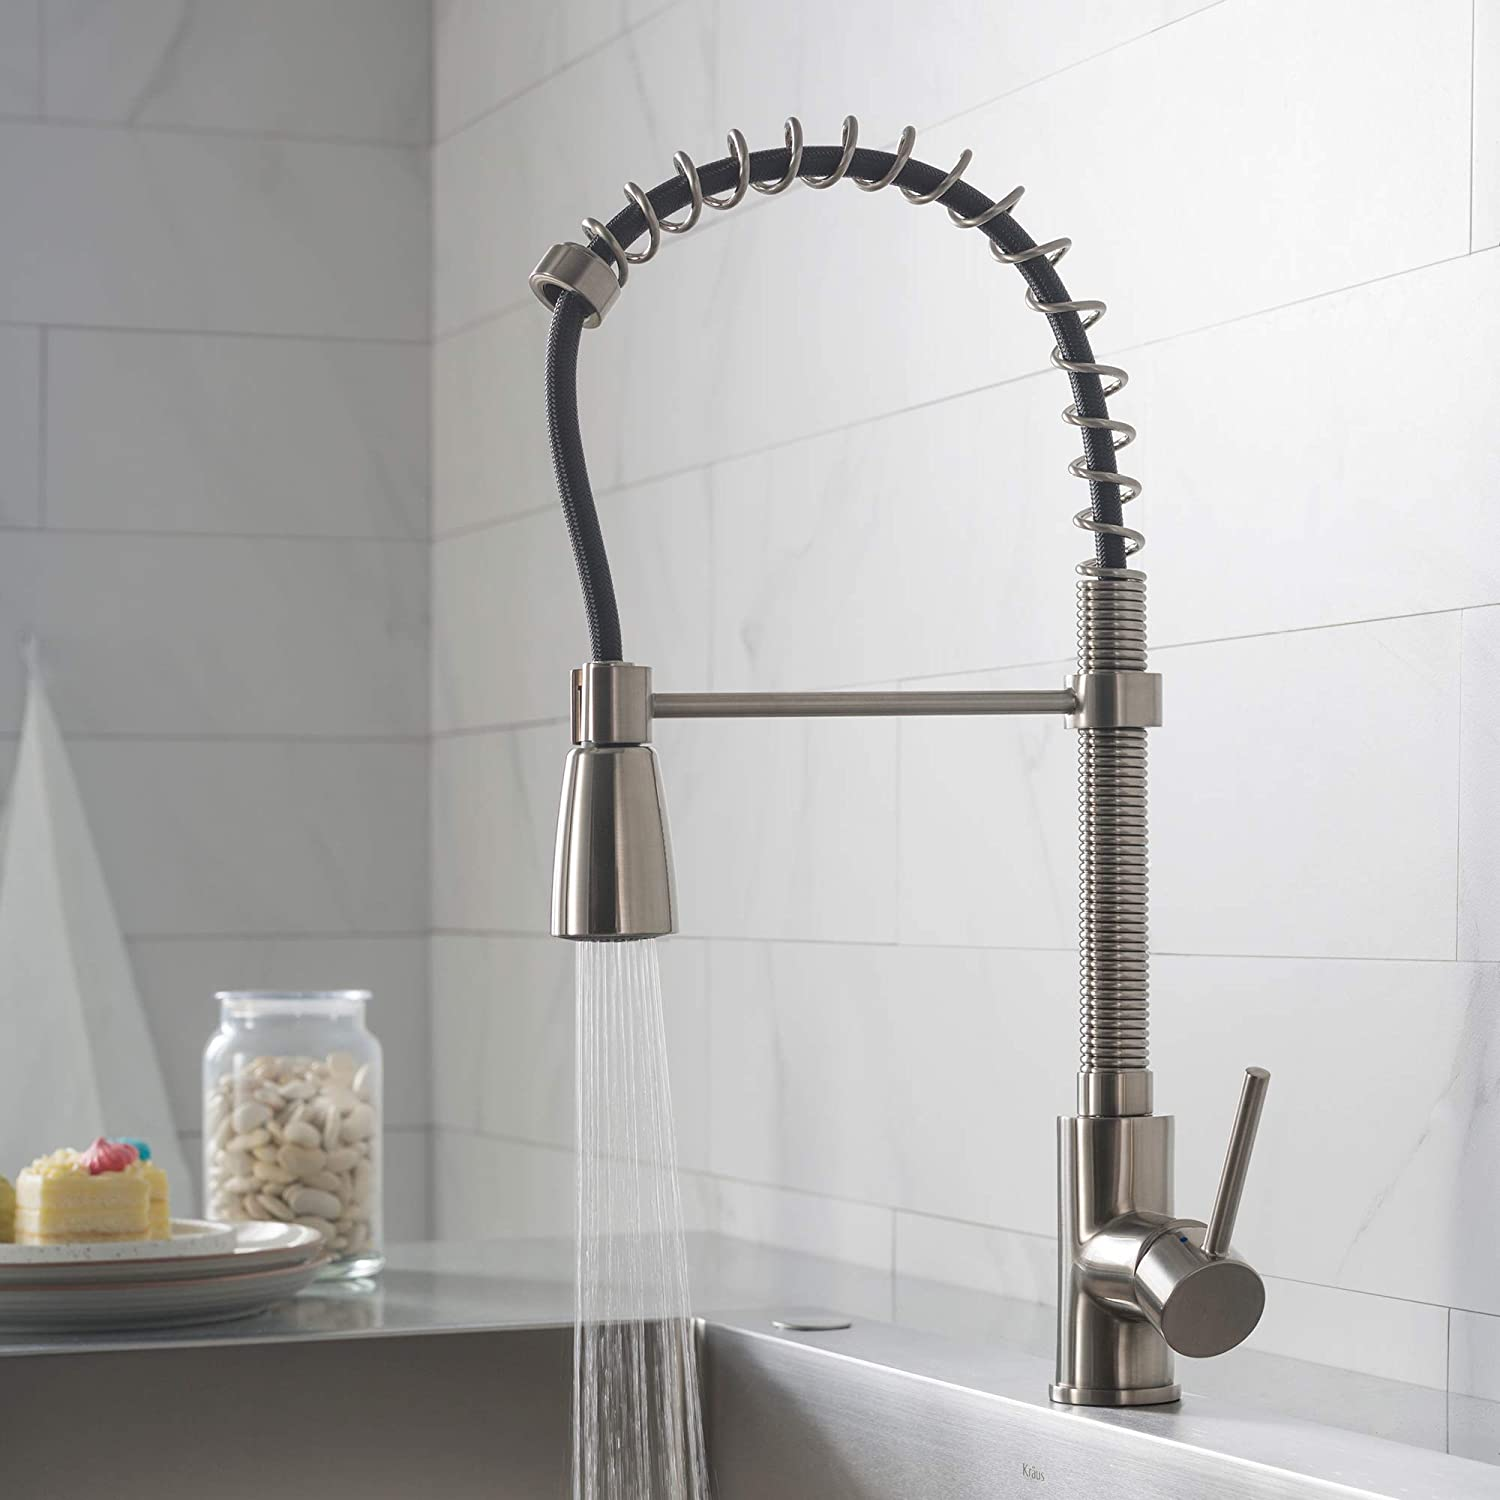 Best Kitchen Faucets.Kraus Kpf 1612ss Single Lever Pull Down Kitchen Faucet In Stainless Steel